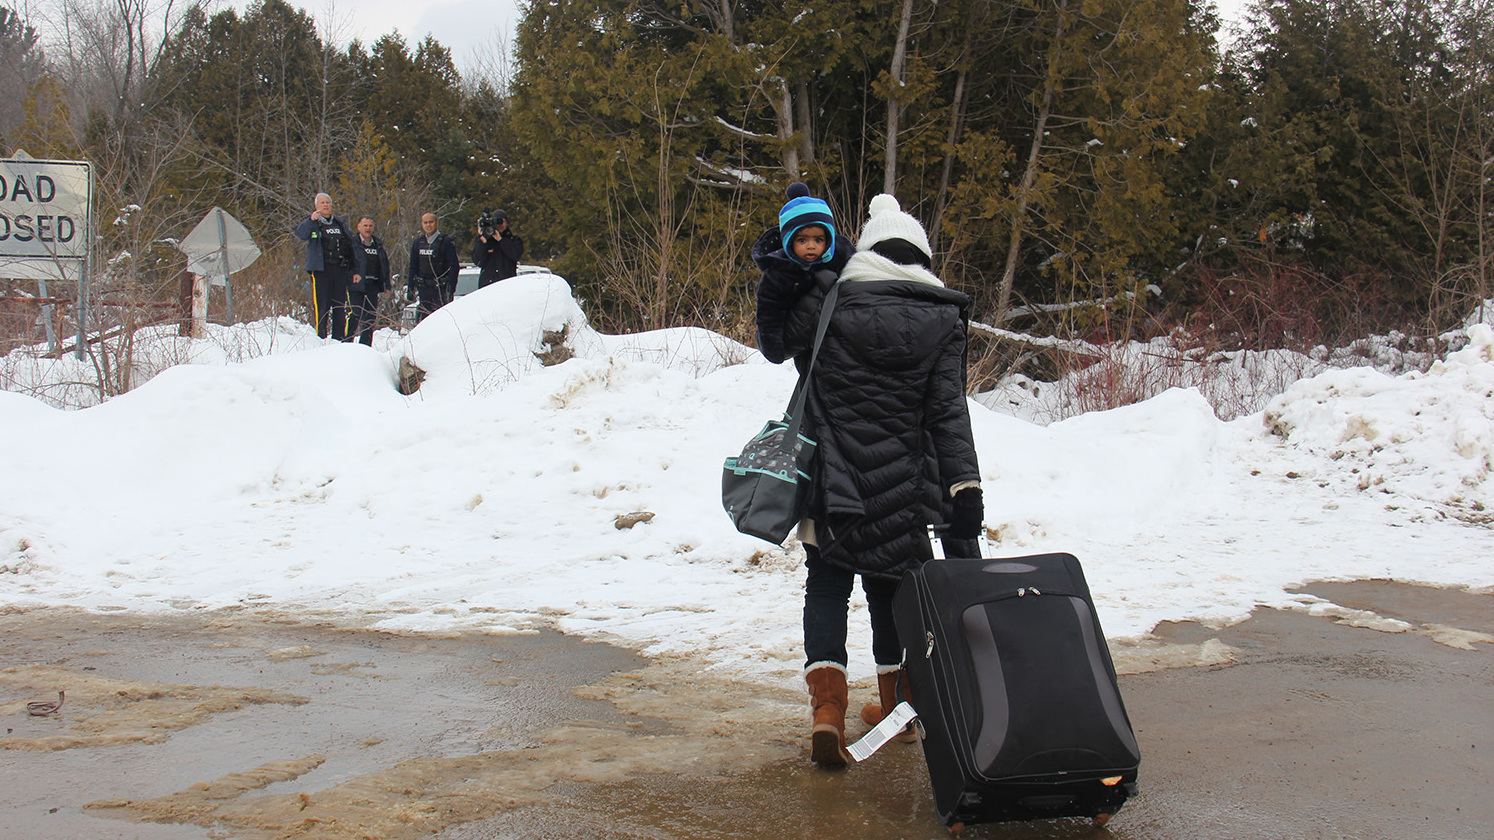 Migrants Choose Arrest In Canada Over Staying In The U.S.